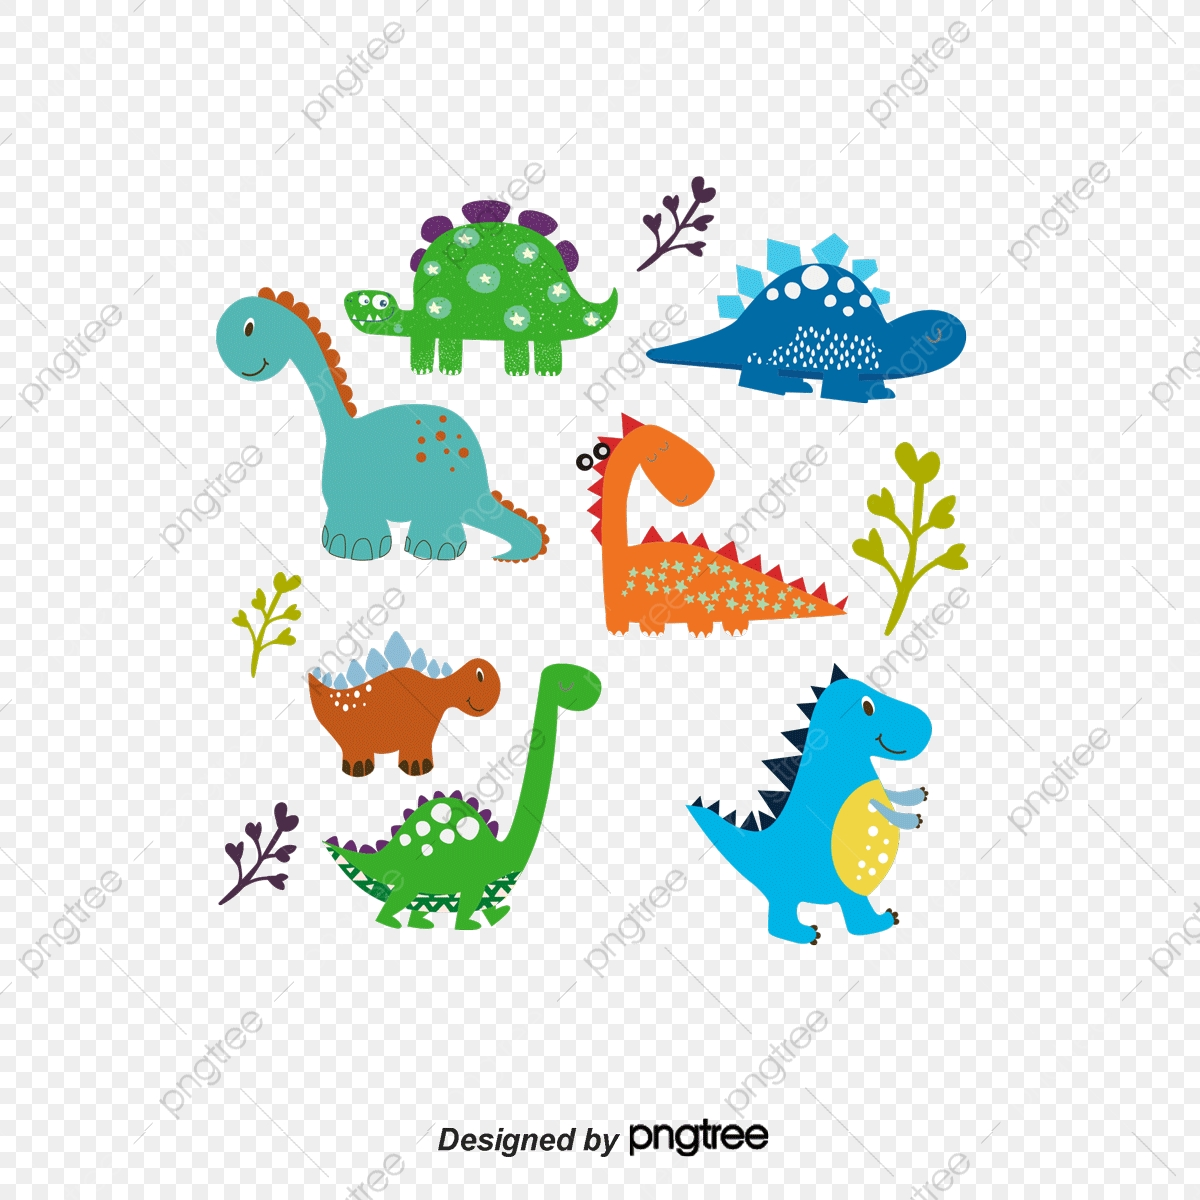 Dinosaurs Vector Dinosaur Cartoon Color Painted Png Transparent Clipart Image And Psd File For Free Download